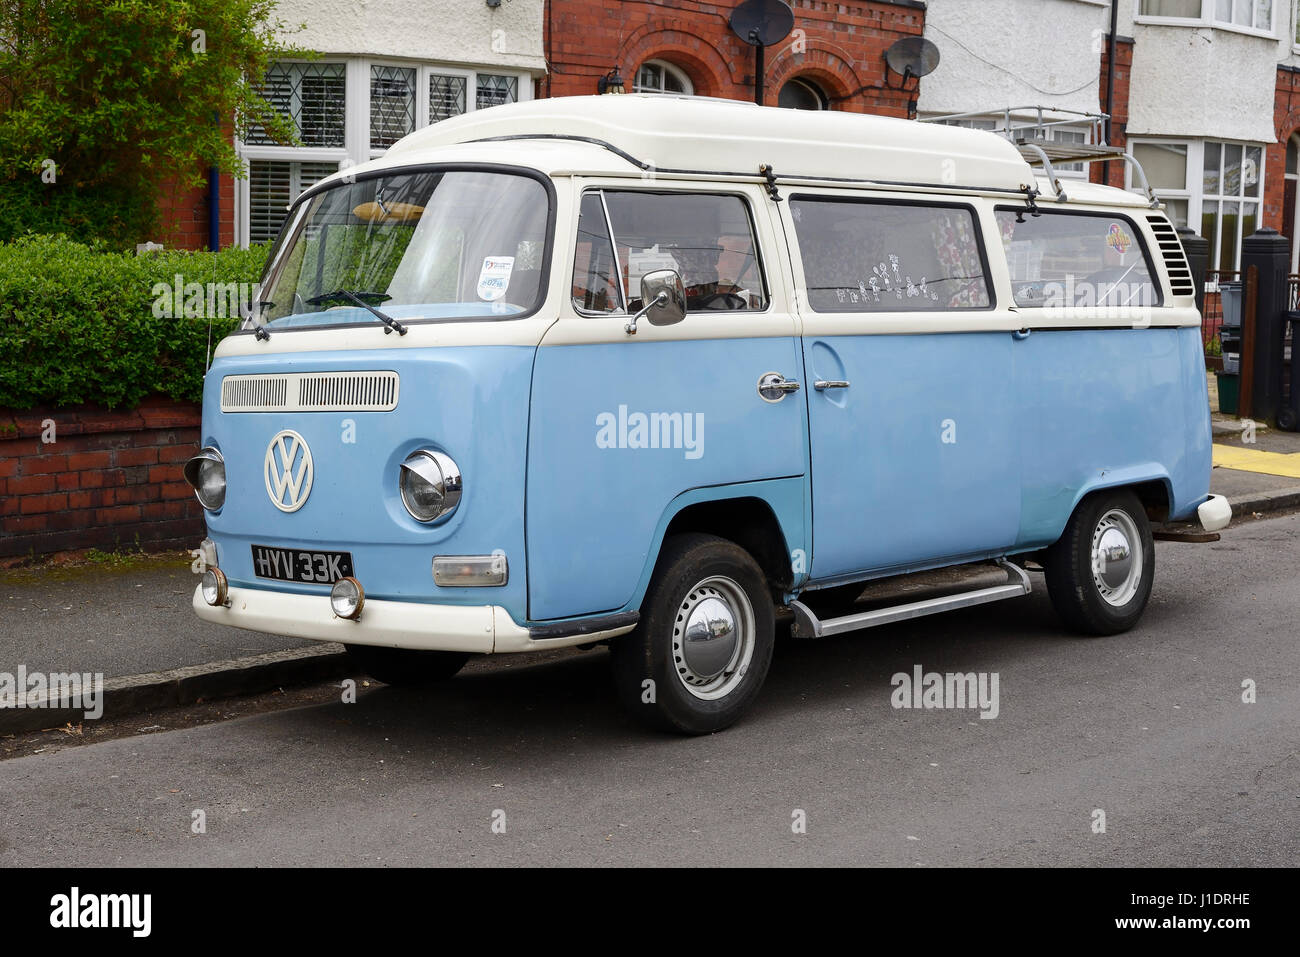 A vintage VW camper van from the year 1971 parked on a suburban street in Chester UK - Stock Image